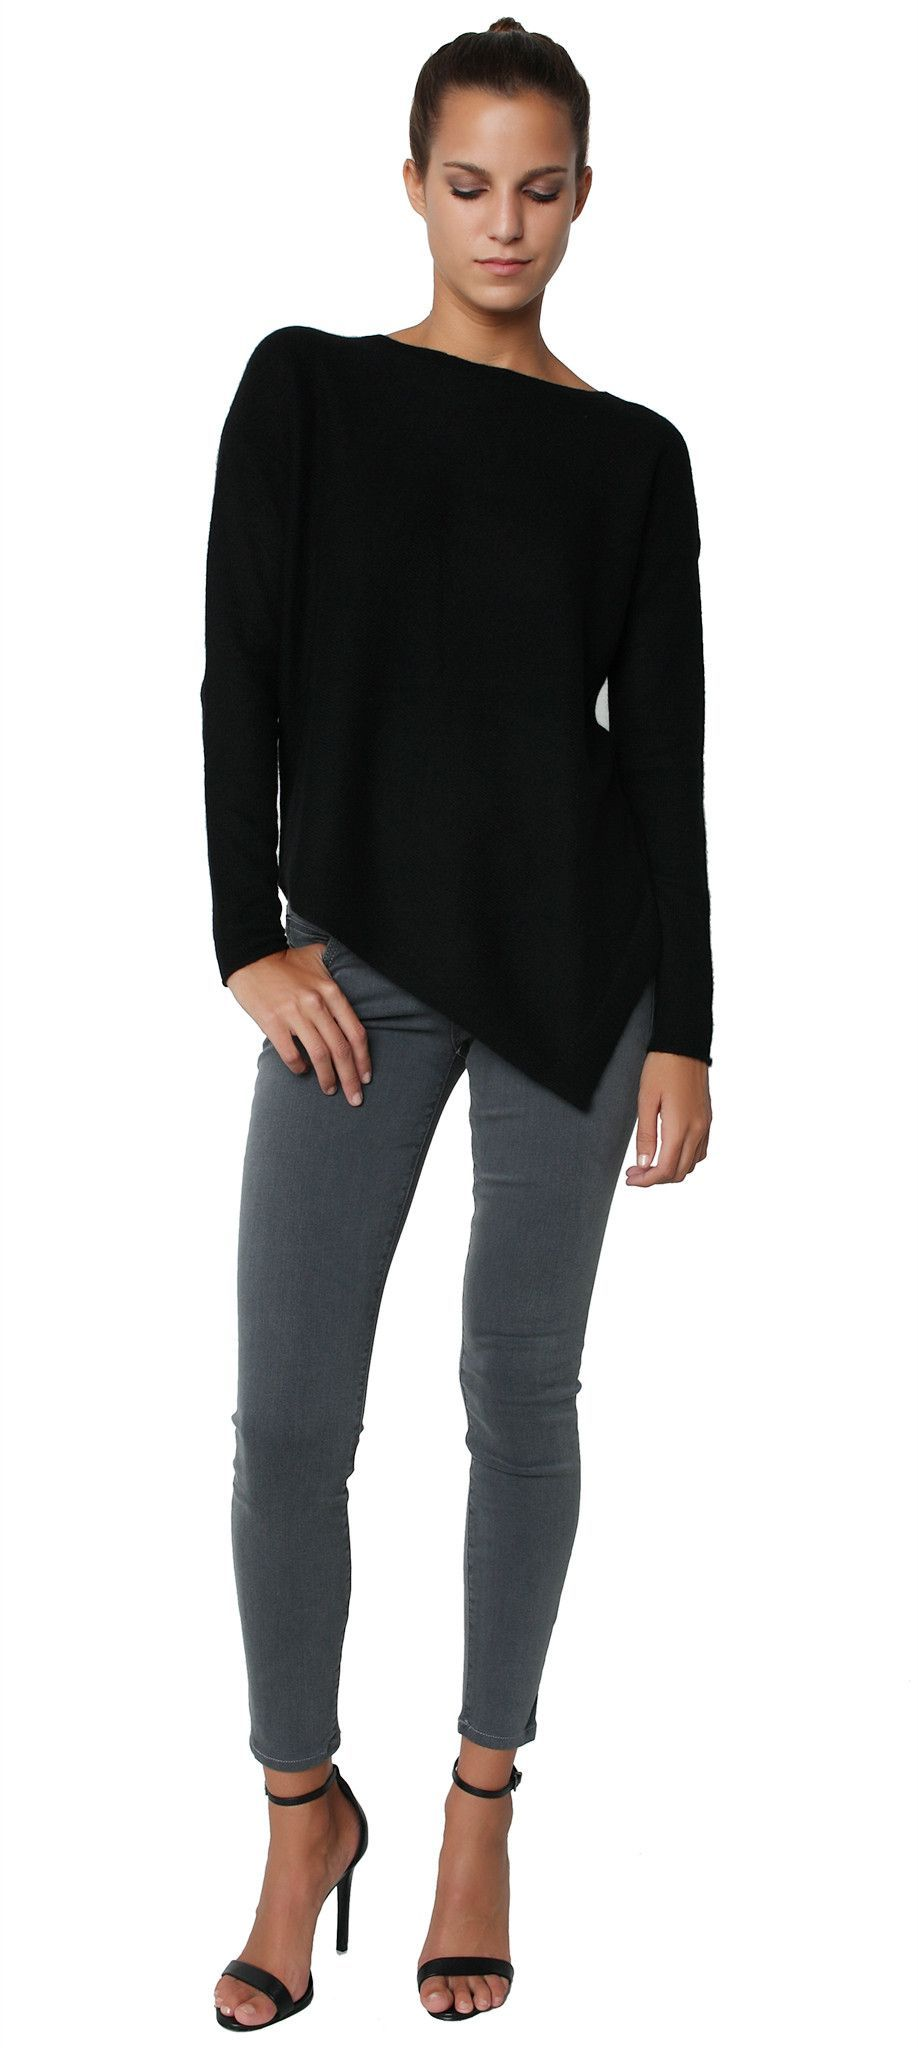 Angie Sweater Solid Black | MC ♥ New Arrivals | Pinterest | Solid ...